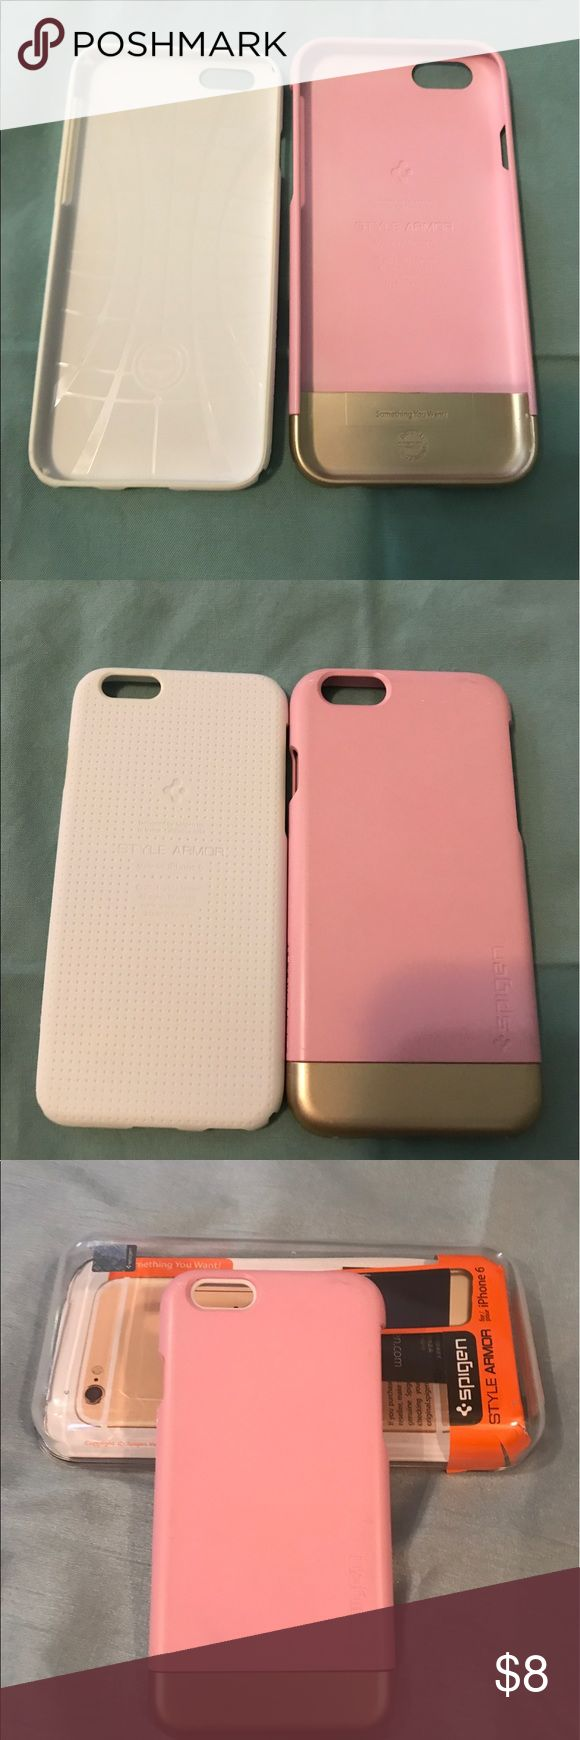 🌸Spigen IPhone 6 phone cover🌸 Spigen  IPhone 6 phone cover. Style is Armor. Case has TPU layer that protects the phone from scratches. Outer case is polycarbonate. Has removable bottom to slide phone in and out. Gently used. Has some scratches on outer case but still has a lot of use in it. Color is Sherbert Pink. Spigen Accessories Phone Cases